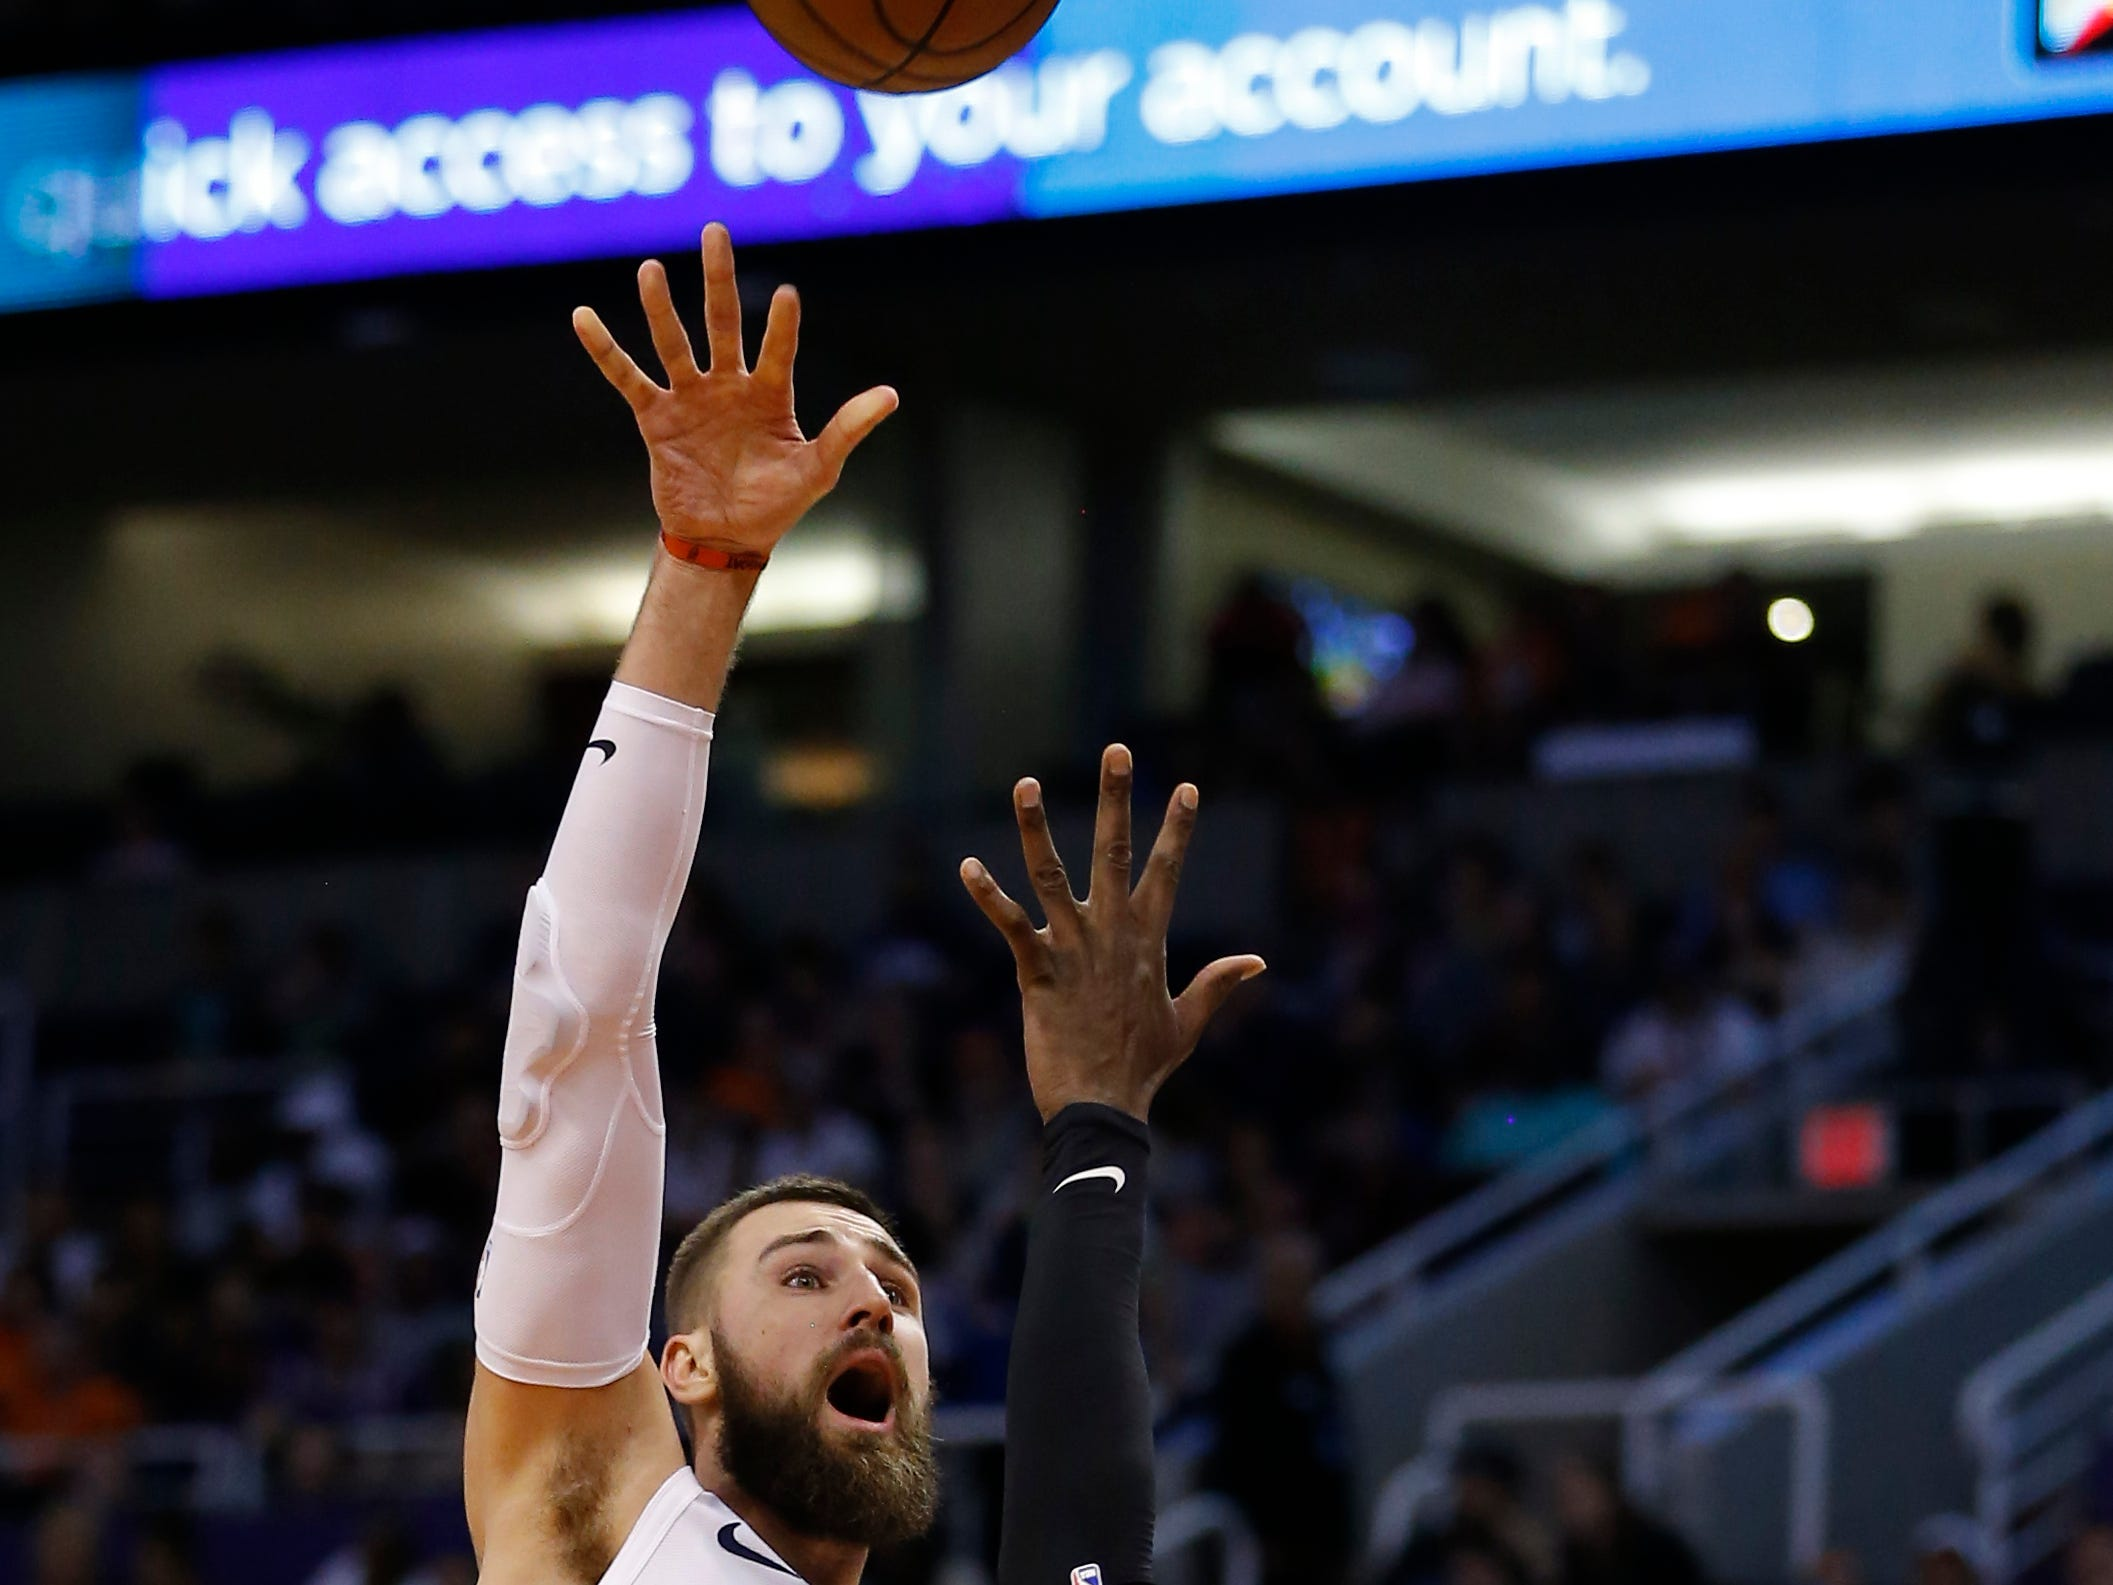 Memphis Grizzlies center Jonas Valanciunas, left, shoots over Phoenix Suns center Deandre Ayton, left, in the first half during an NBA basketball game, Saturday, March 30, 2019, in Phoenix. (AP Photo/Rick Scuteri)